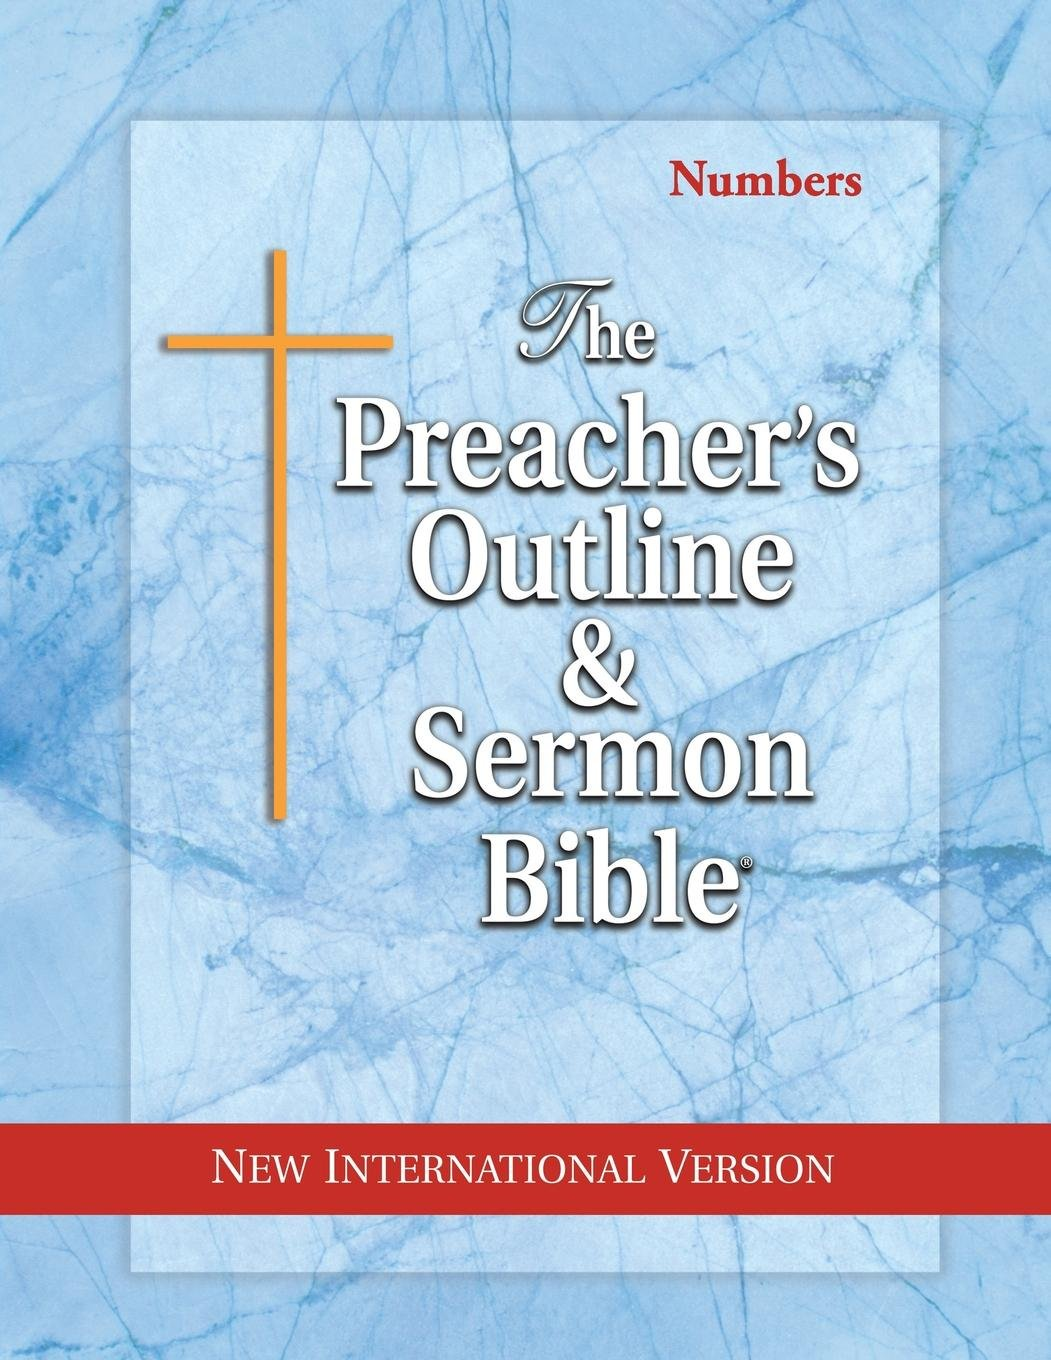 The Preacher's Outline & Sermon Bible: Numbers: New International Version by Leadership Ministries Worldwide